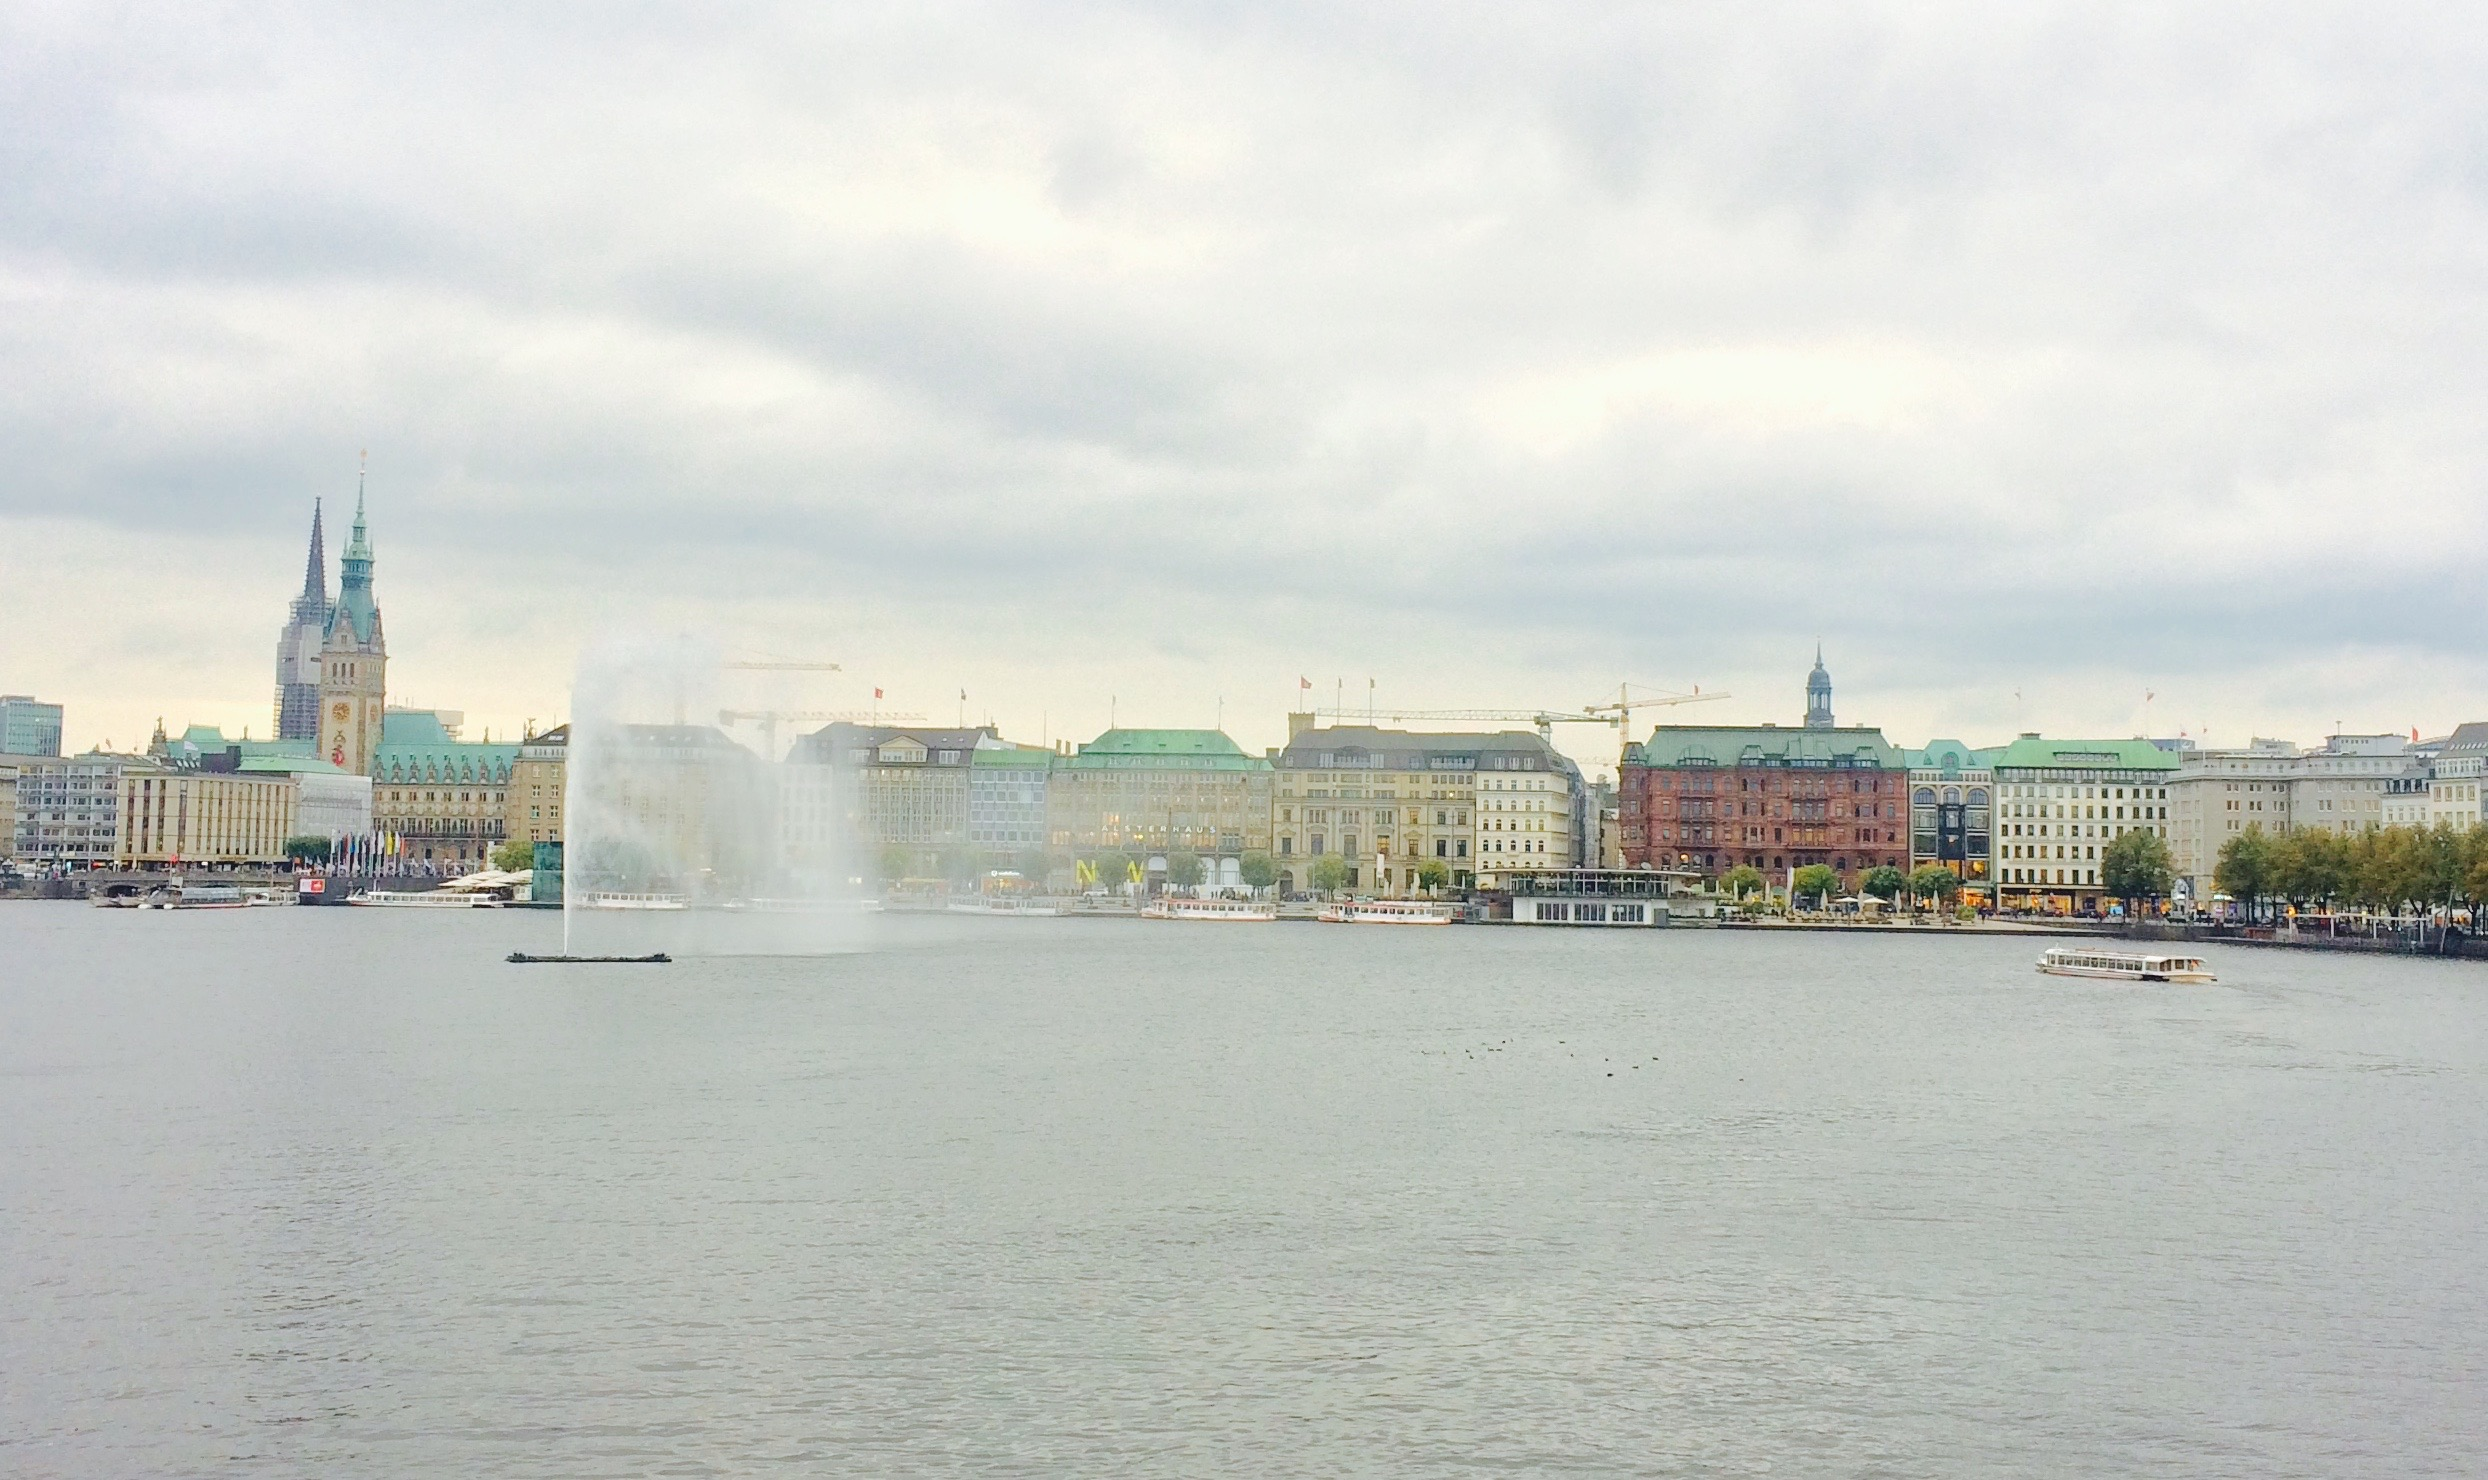 Innenalster,City center of Hamburg, Germany